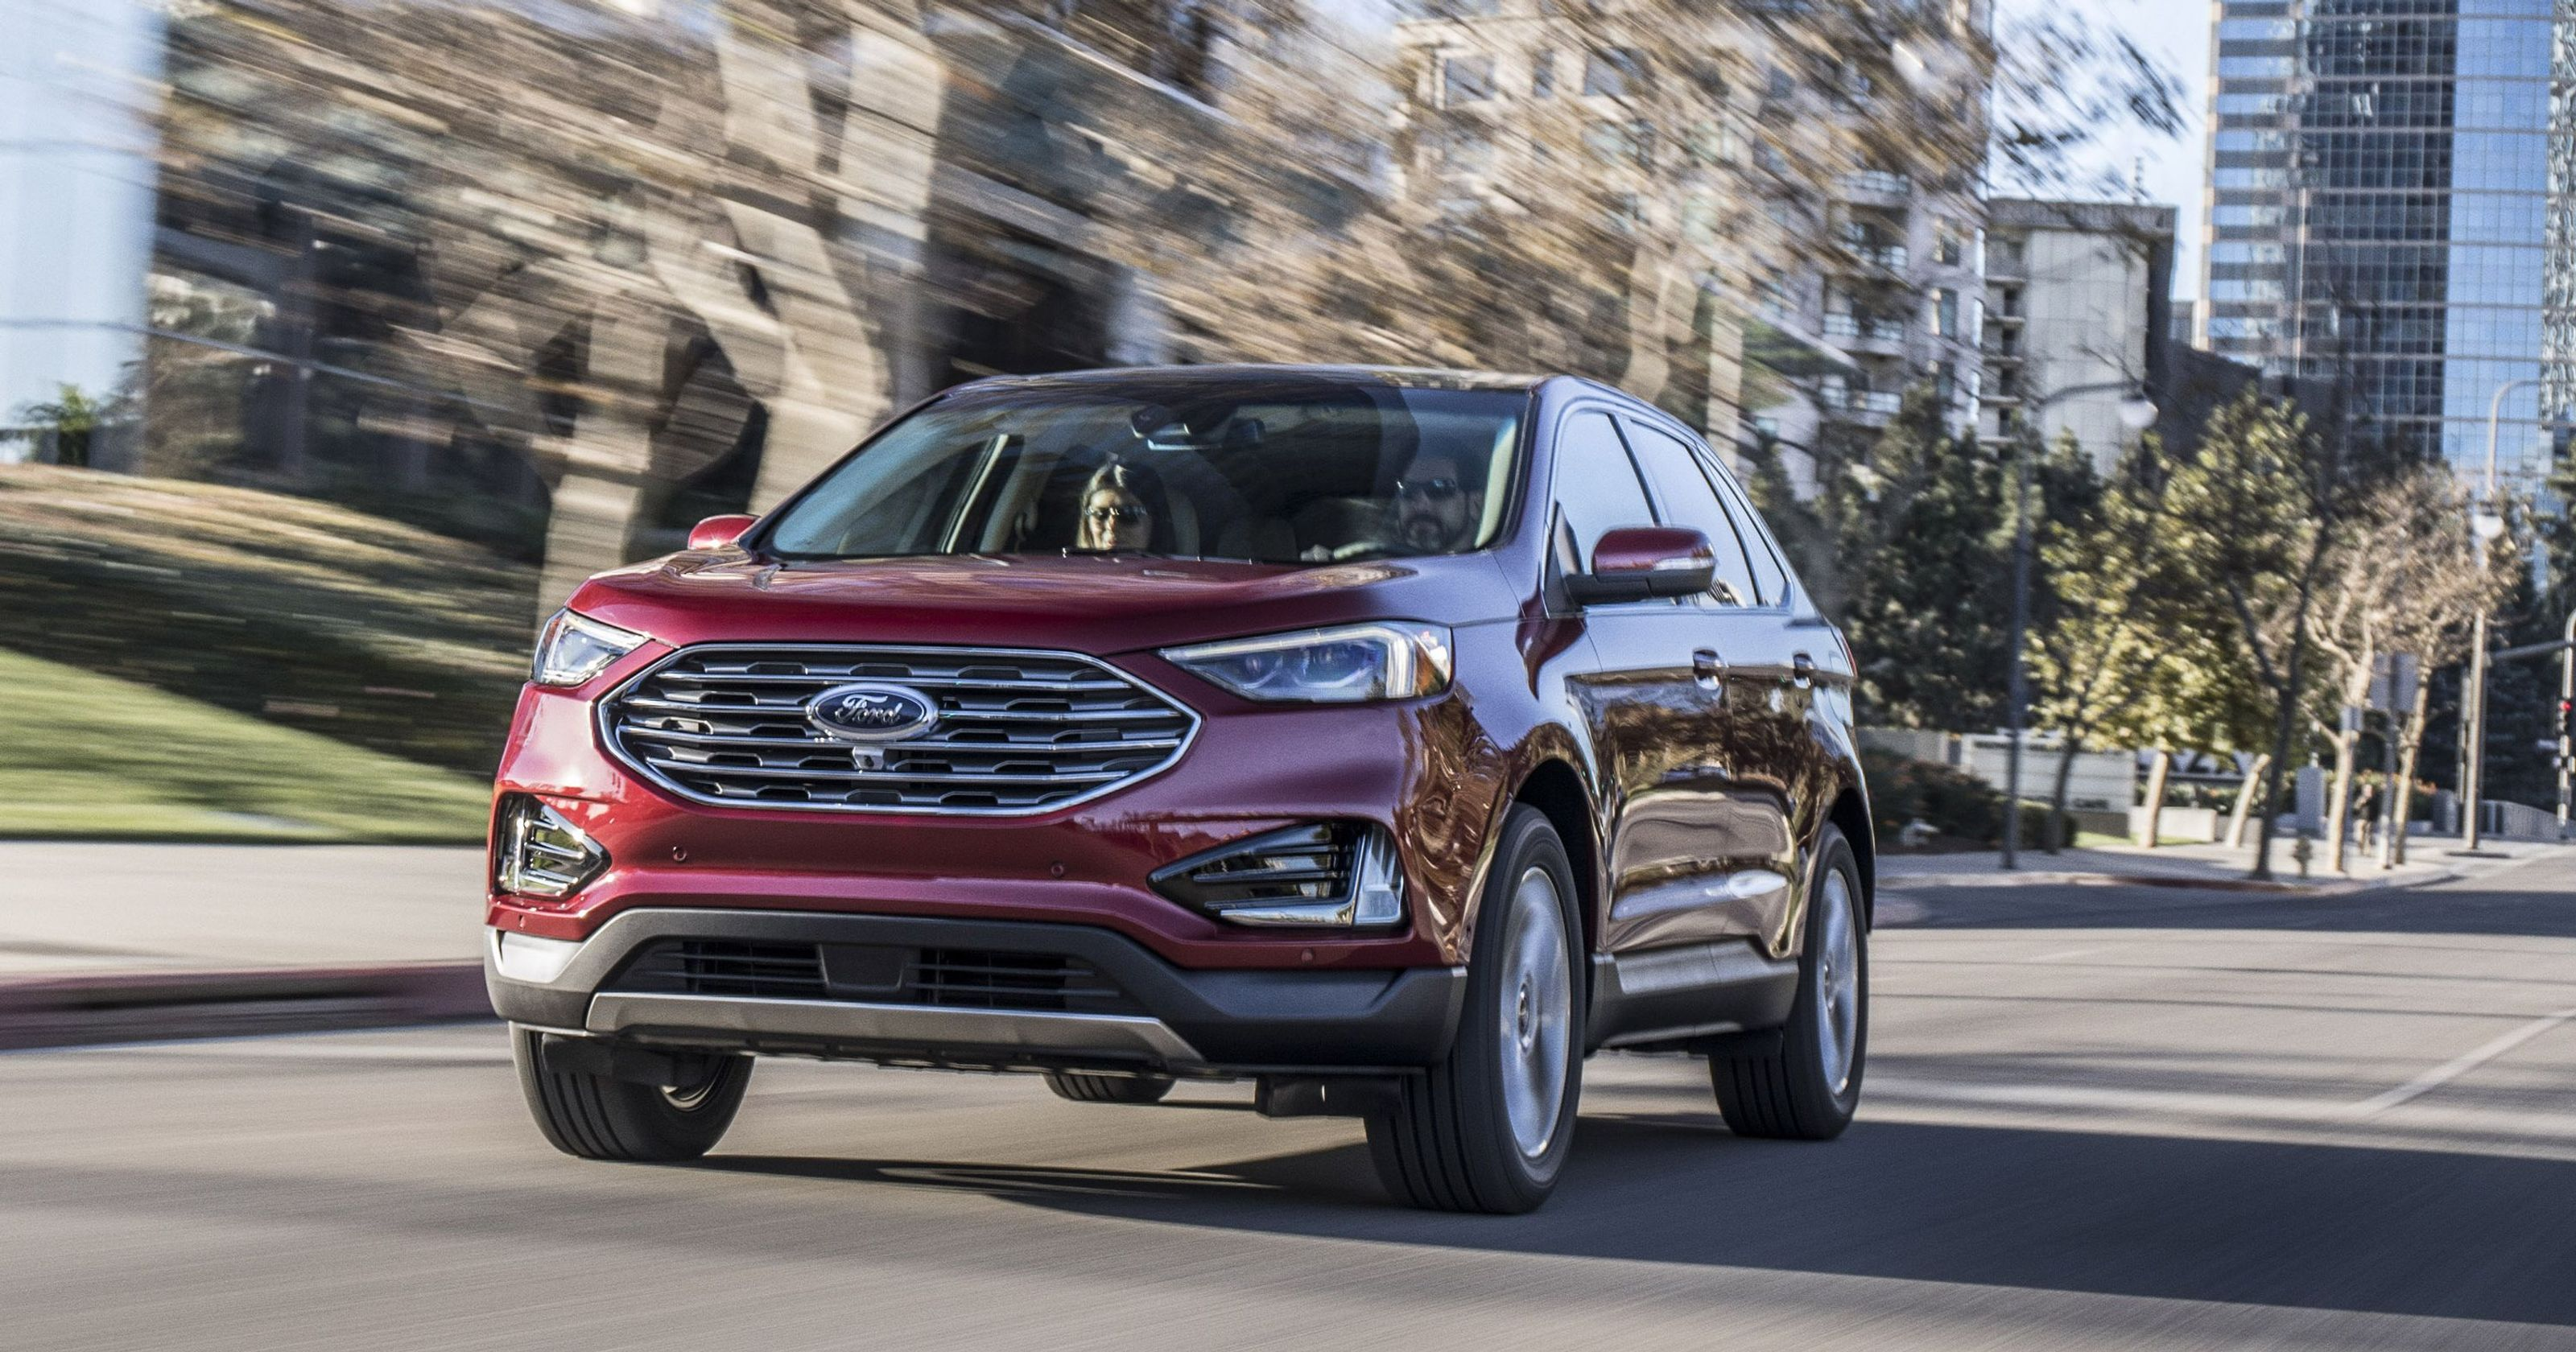 33 All New 2019 Ford Edge New Design New Review